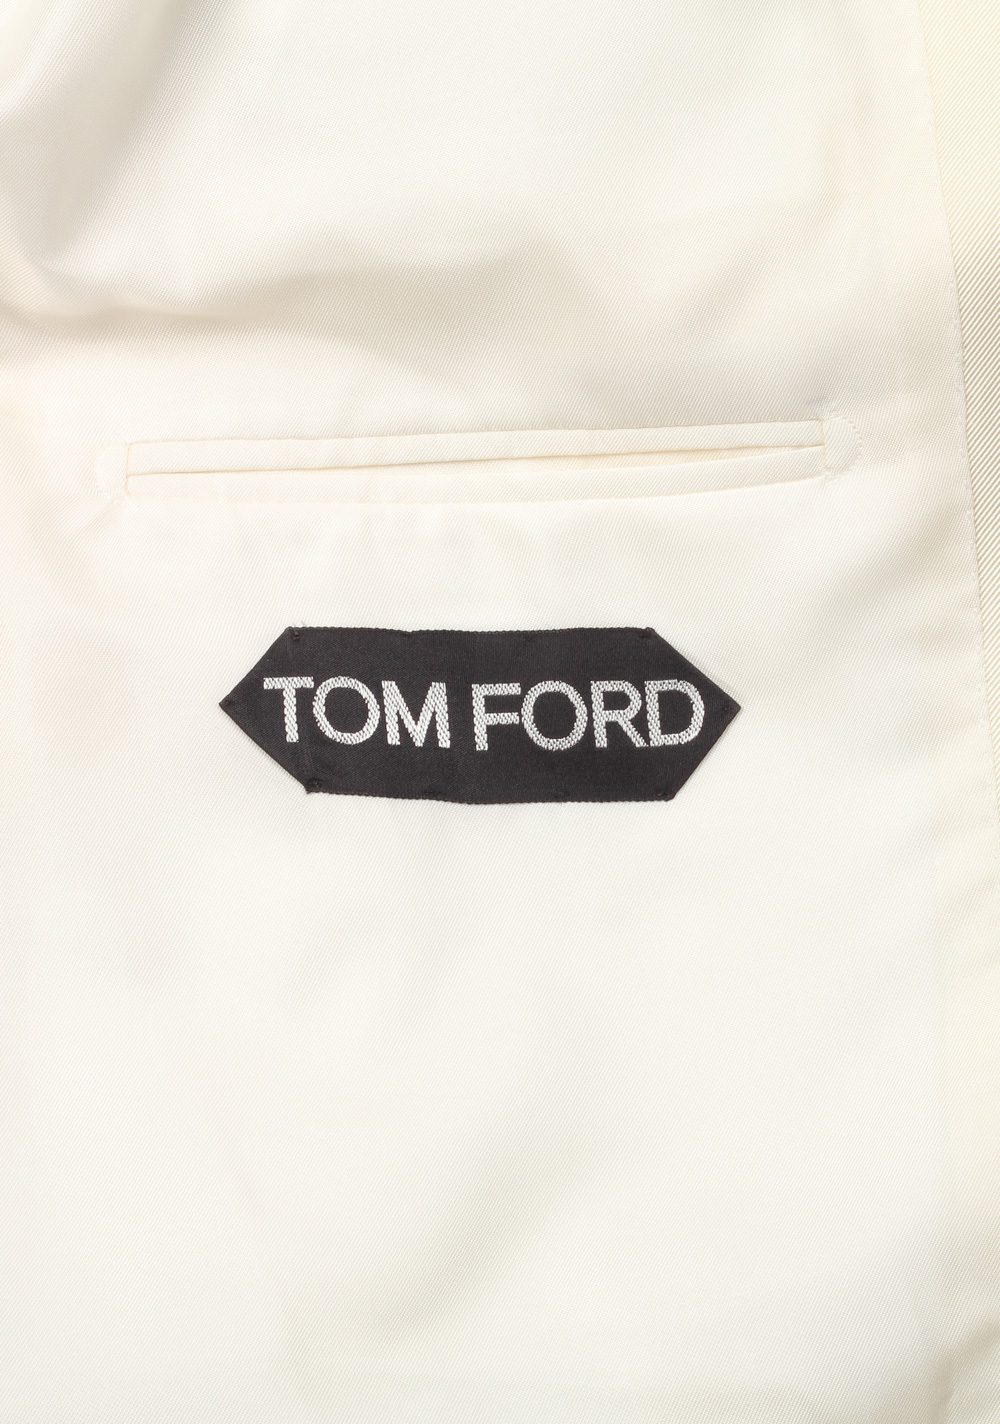 TOM FORD O'Connor Shawl Collar Ivory Sport Coat Tuxedo Dinner Jacket Size 52 / 42R U.S. Fit Y | Costume Limité